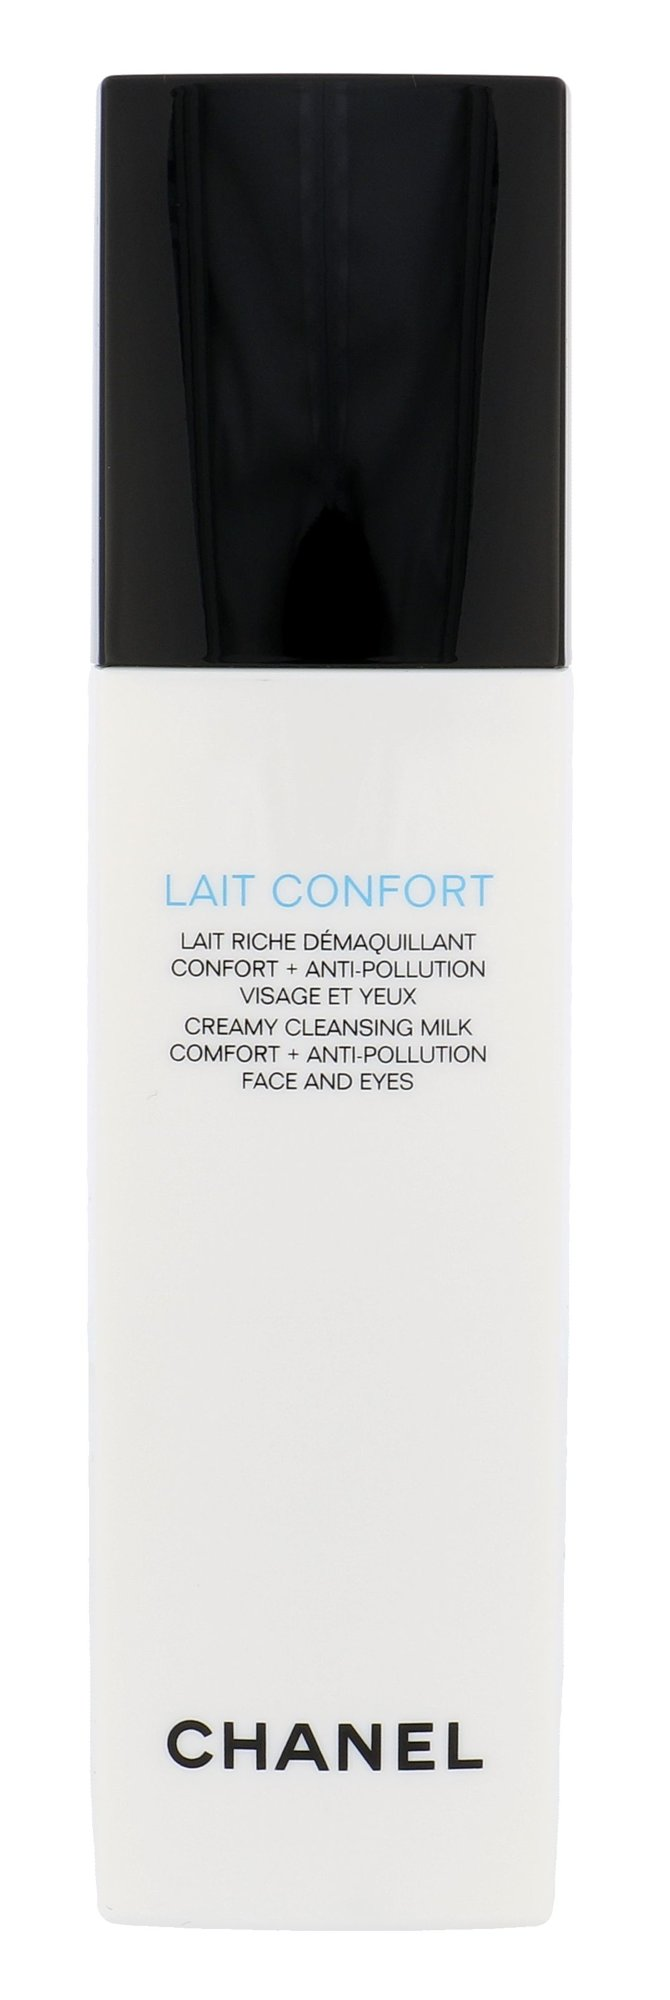 Chanel Lait Confort Cosmetic 150ml